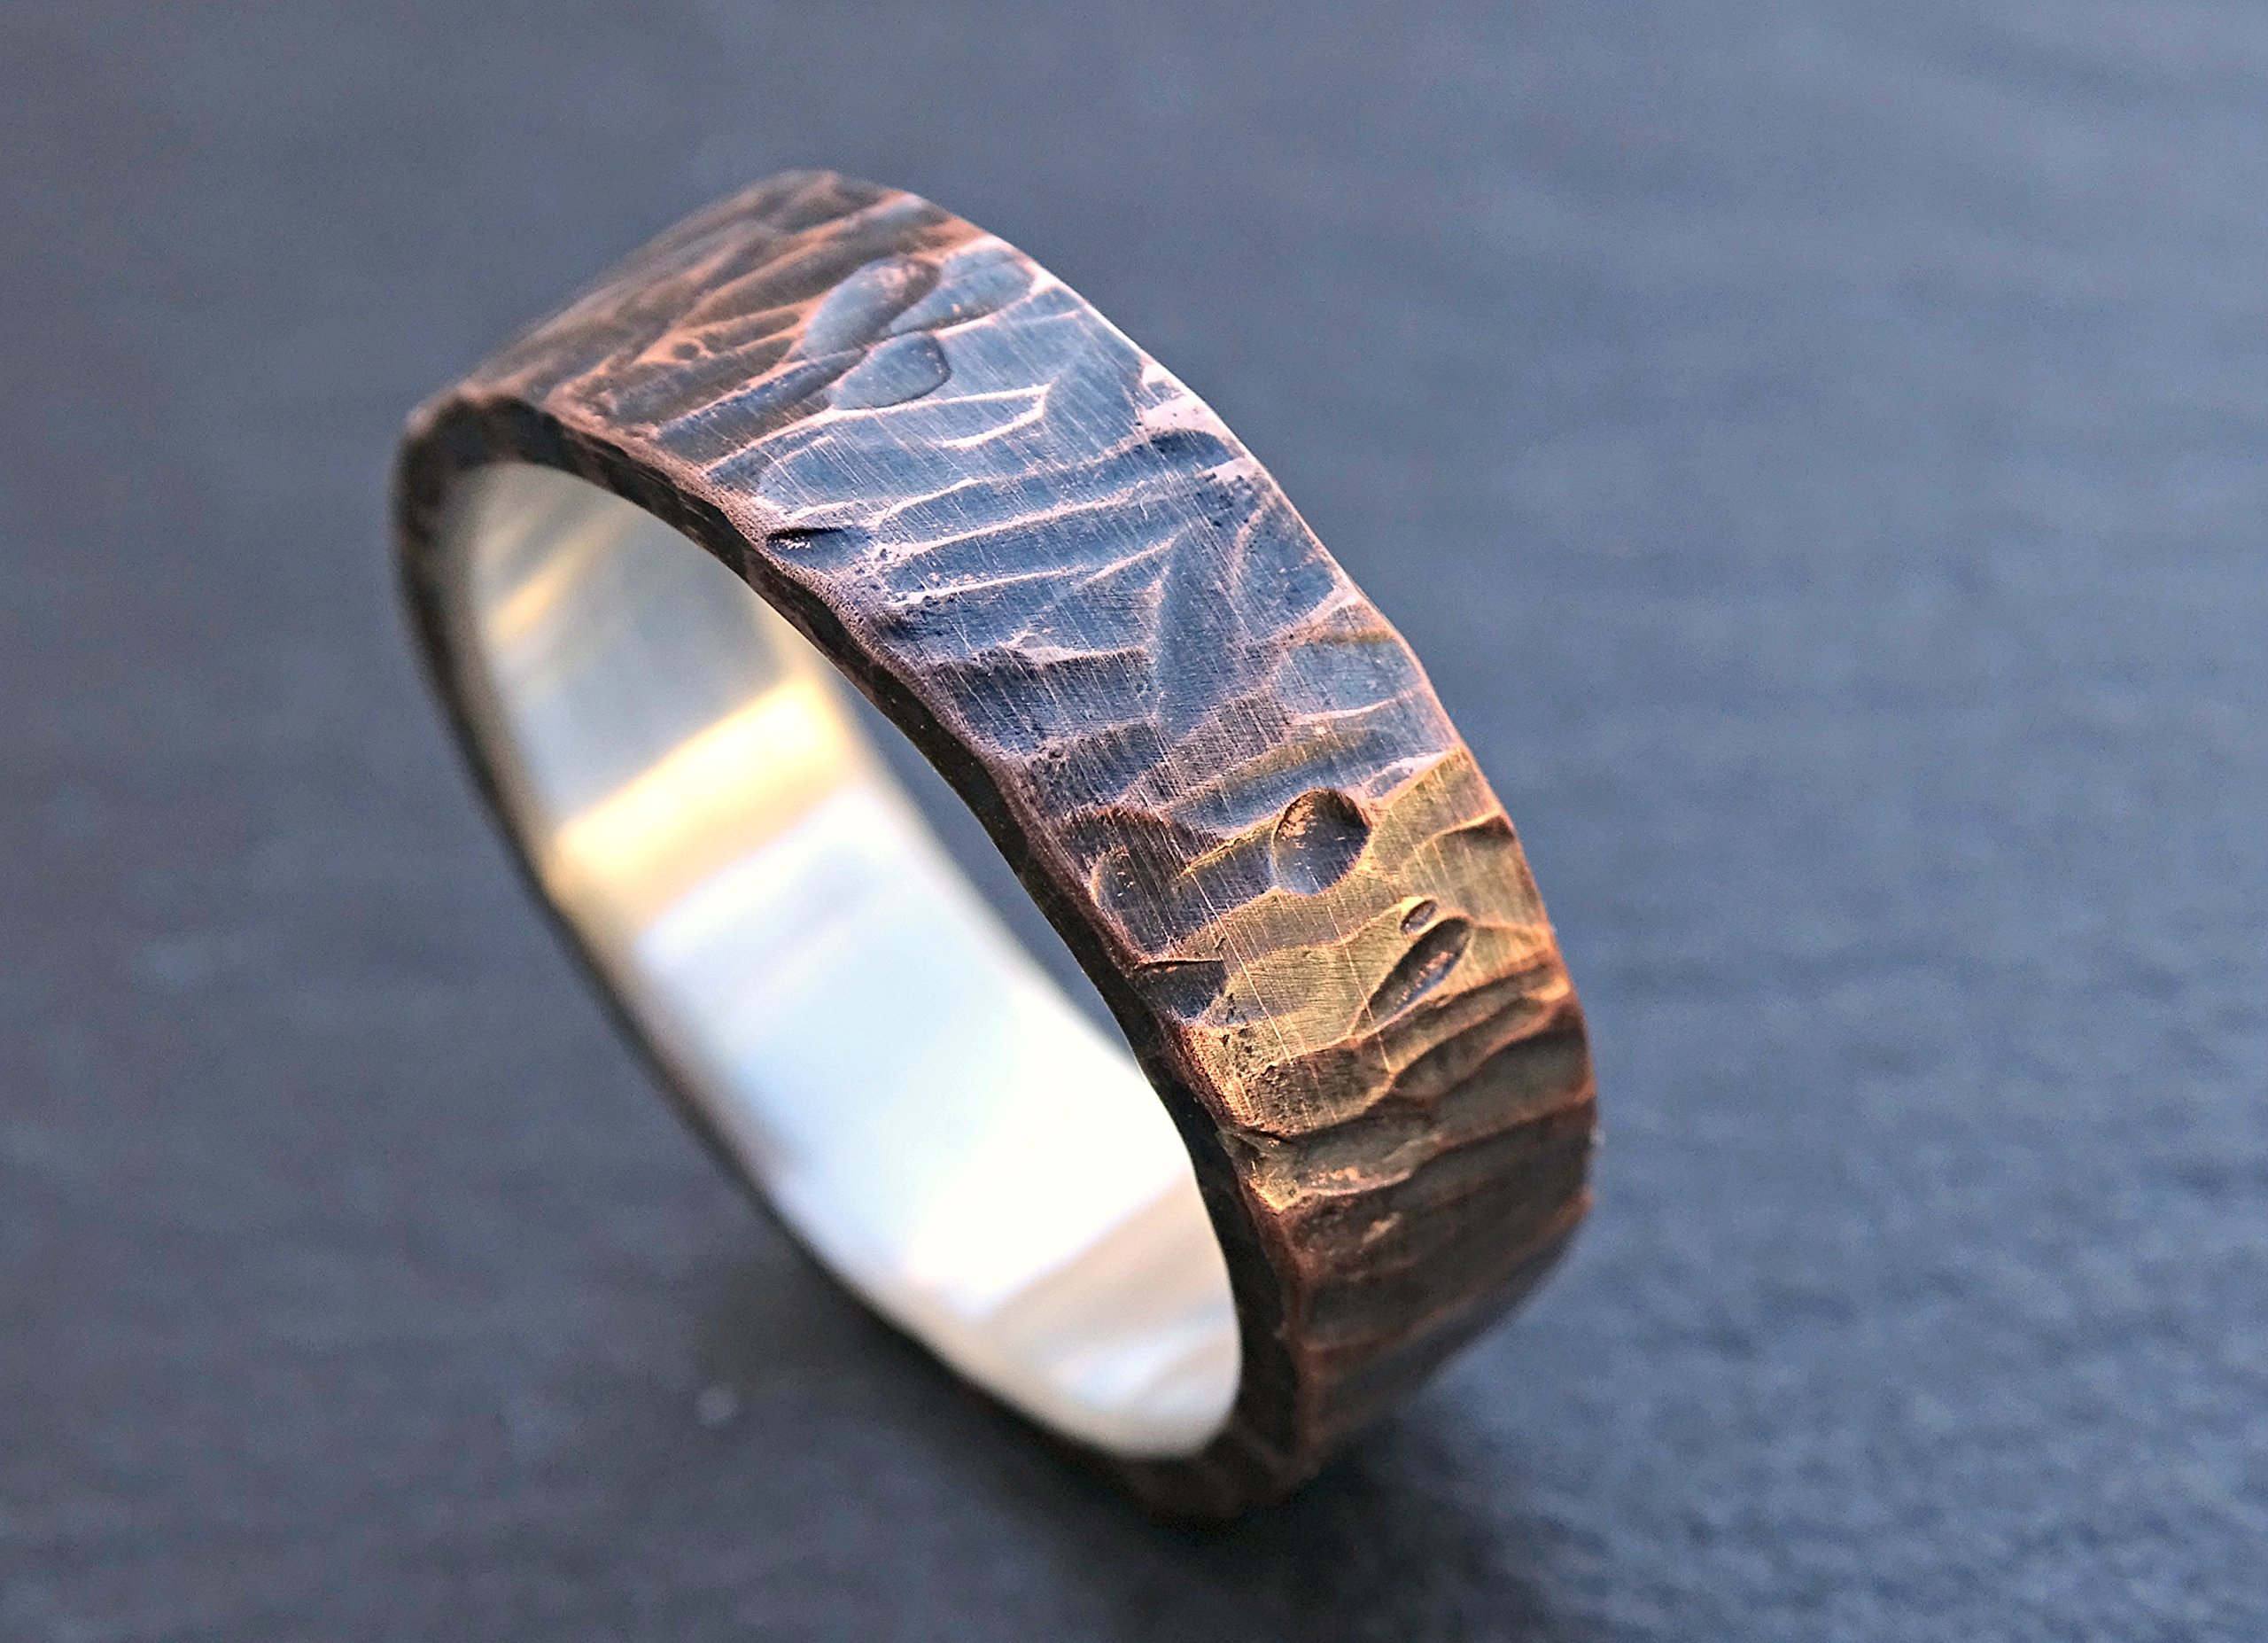 unique wedding band for men, viking ring mens promise ring wood structure, rustic mens ring mixed metal, mens wedding ring two tone, copper anniversary gift